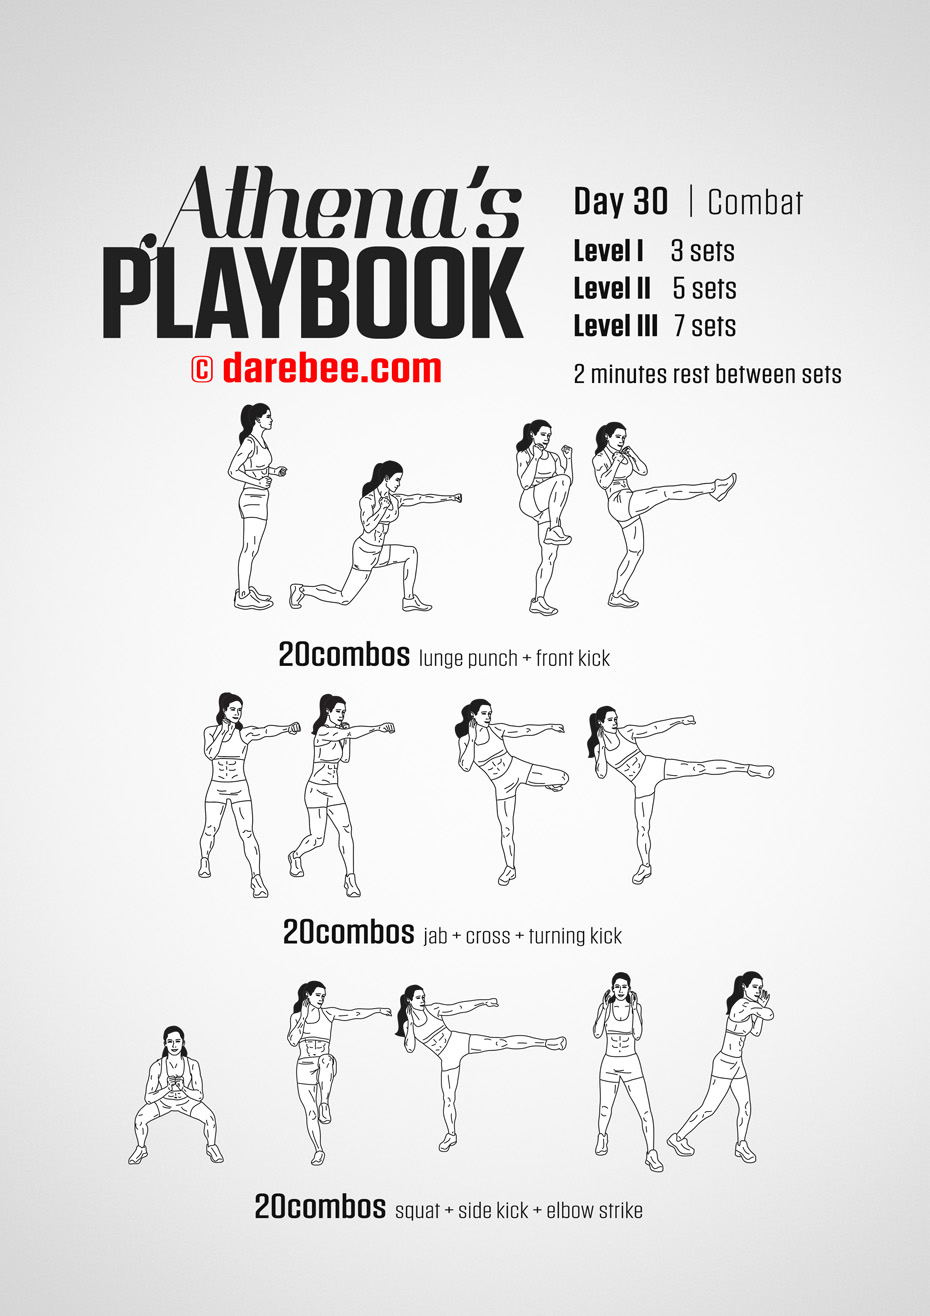 Athena's Playbook - 30 Day Program by DAREBEE